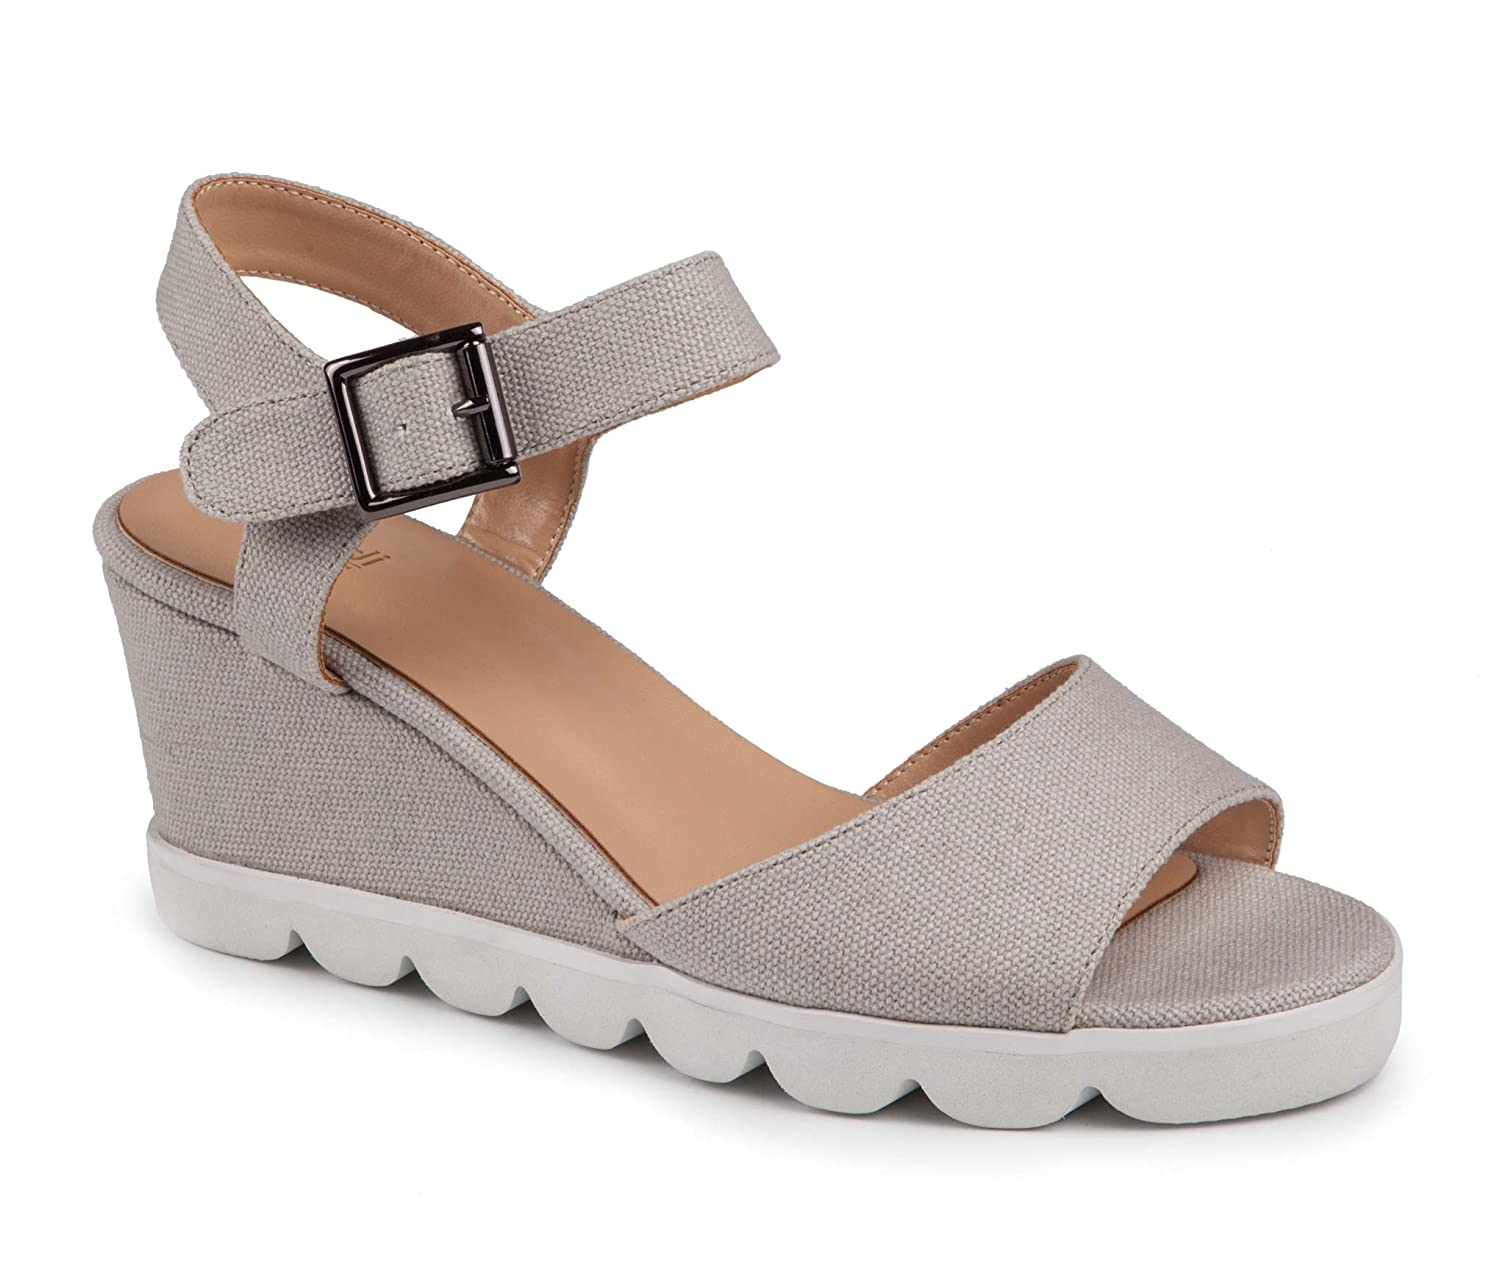 US 5 // EU 35 Baldi Womens Ragusa Grey Textile Slingback Ankle Strap High Wedge Sneakers Sporty Rubber Platform Open Toe Sandals with Buckle